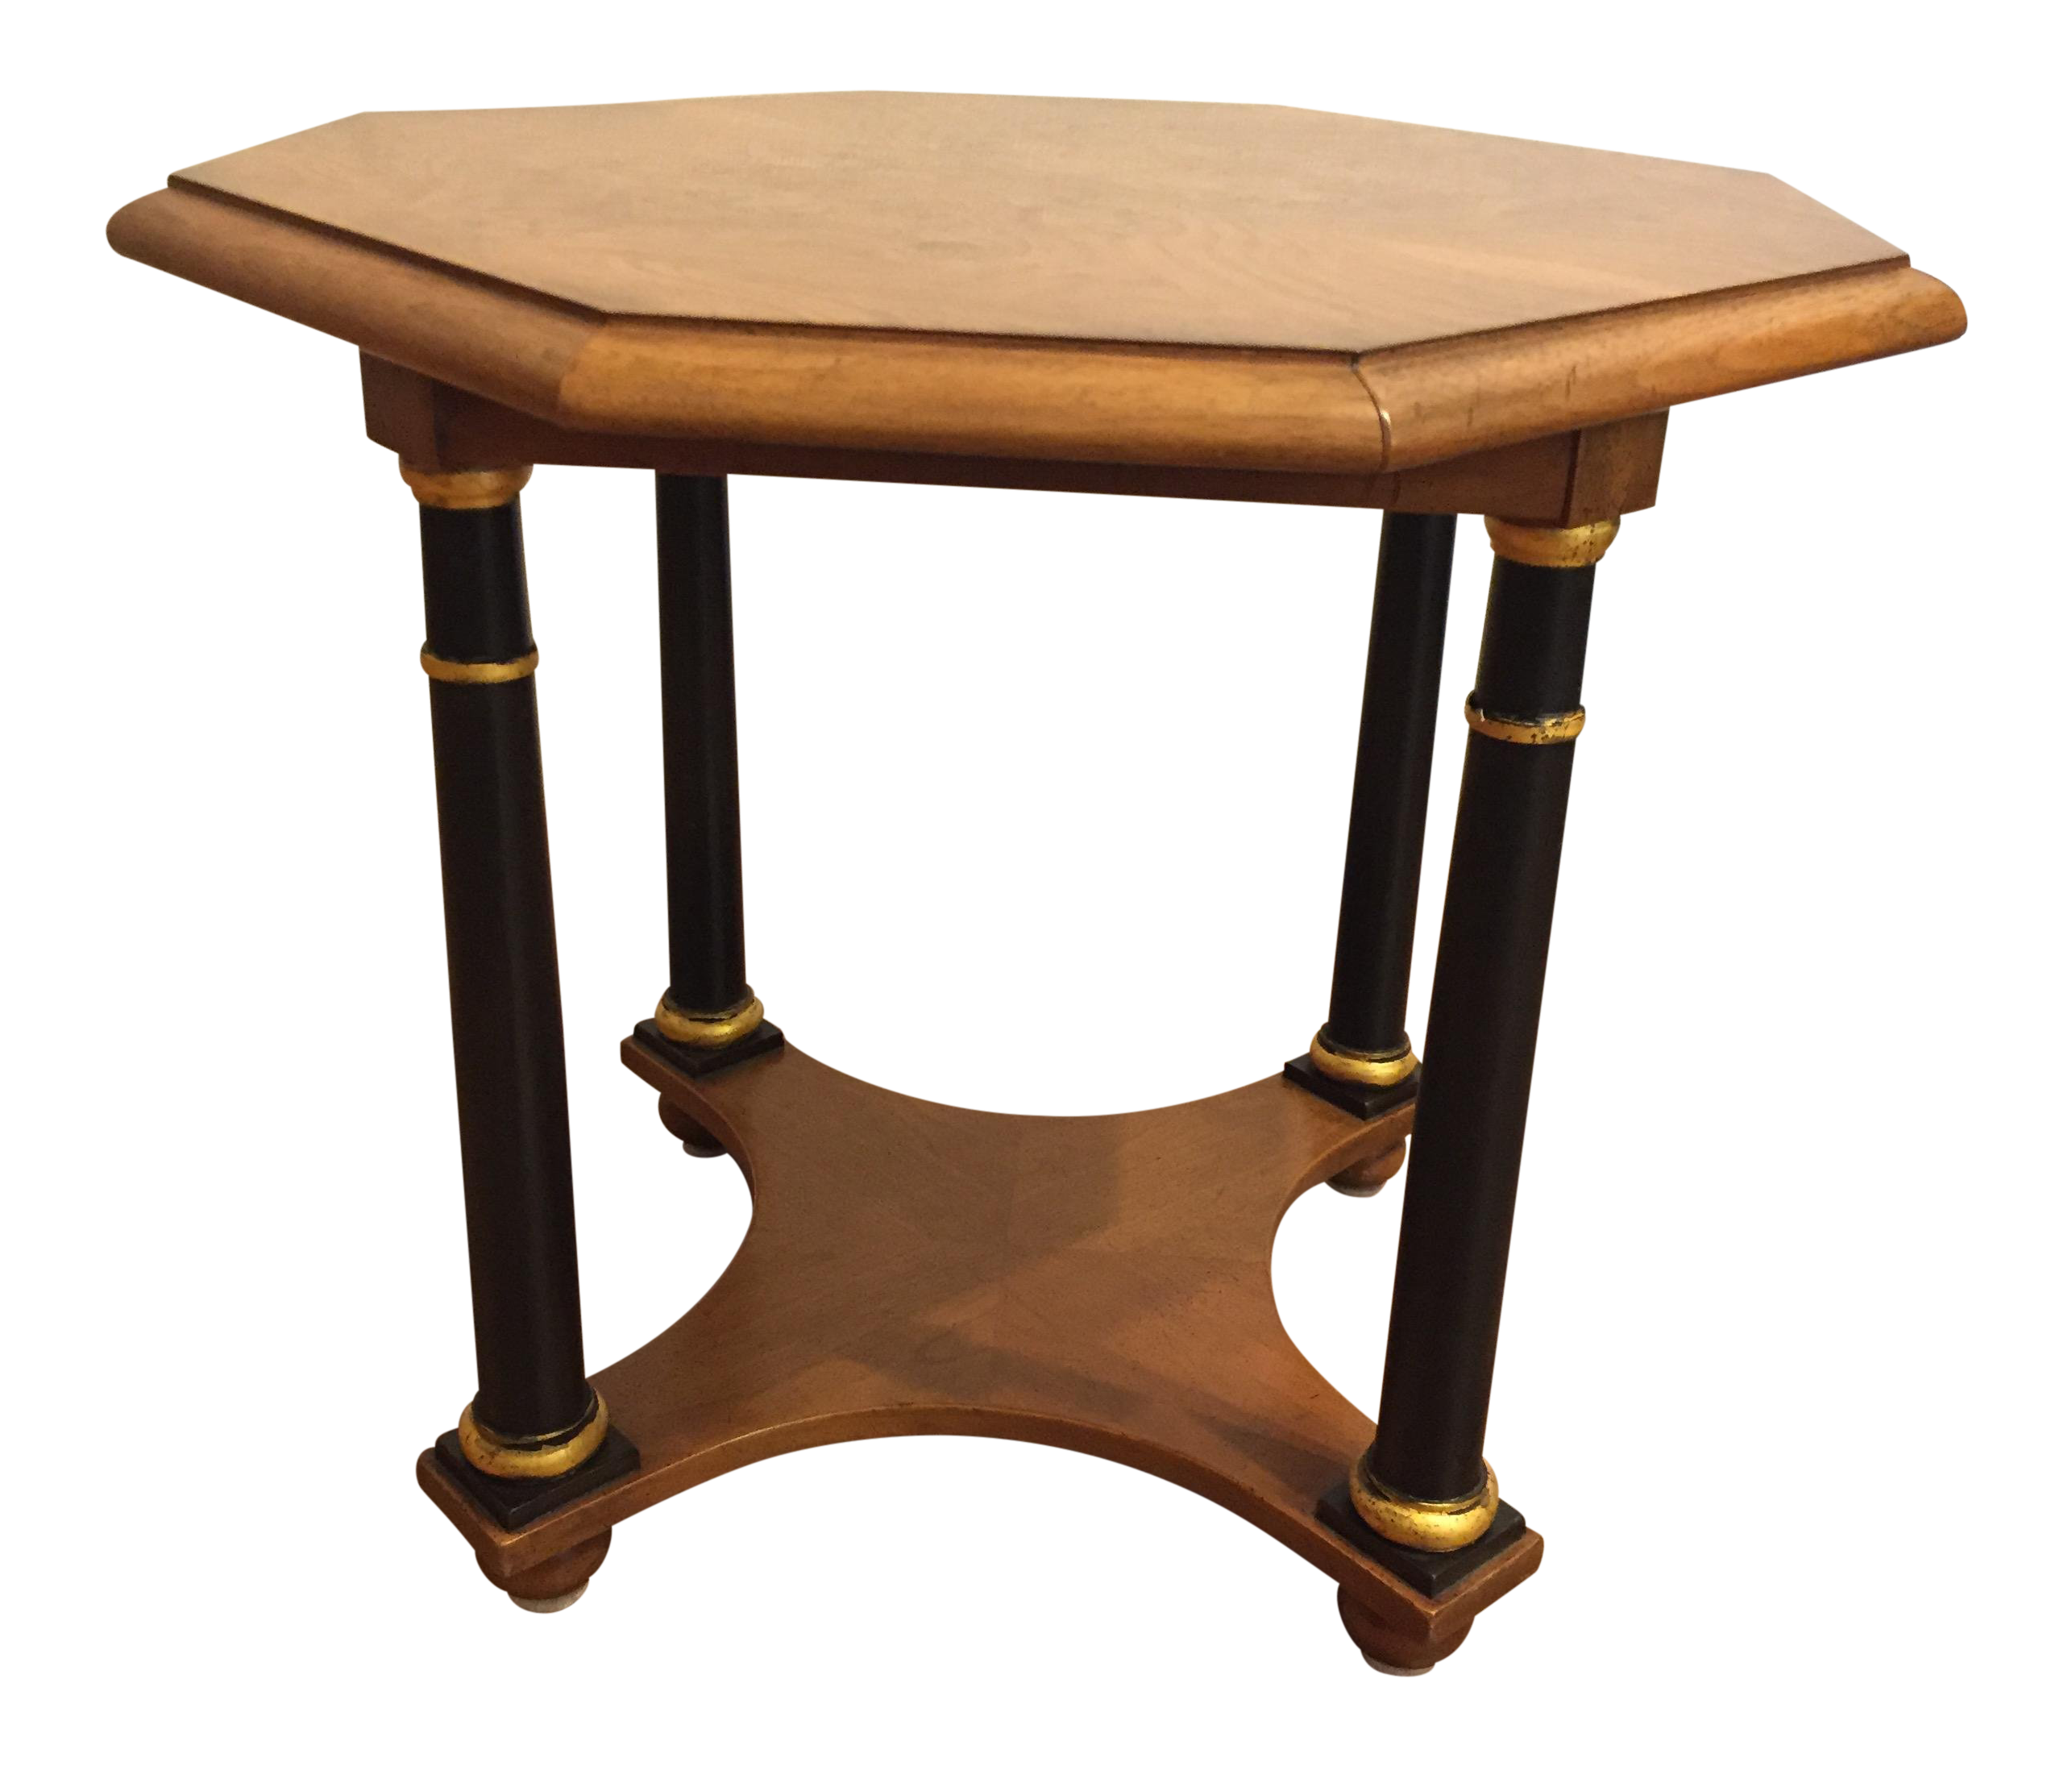 Delicieux Baker Furniture Octagonal Side Table With Burl Top And Black Columns With  Gold Trim For Sale